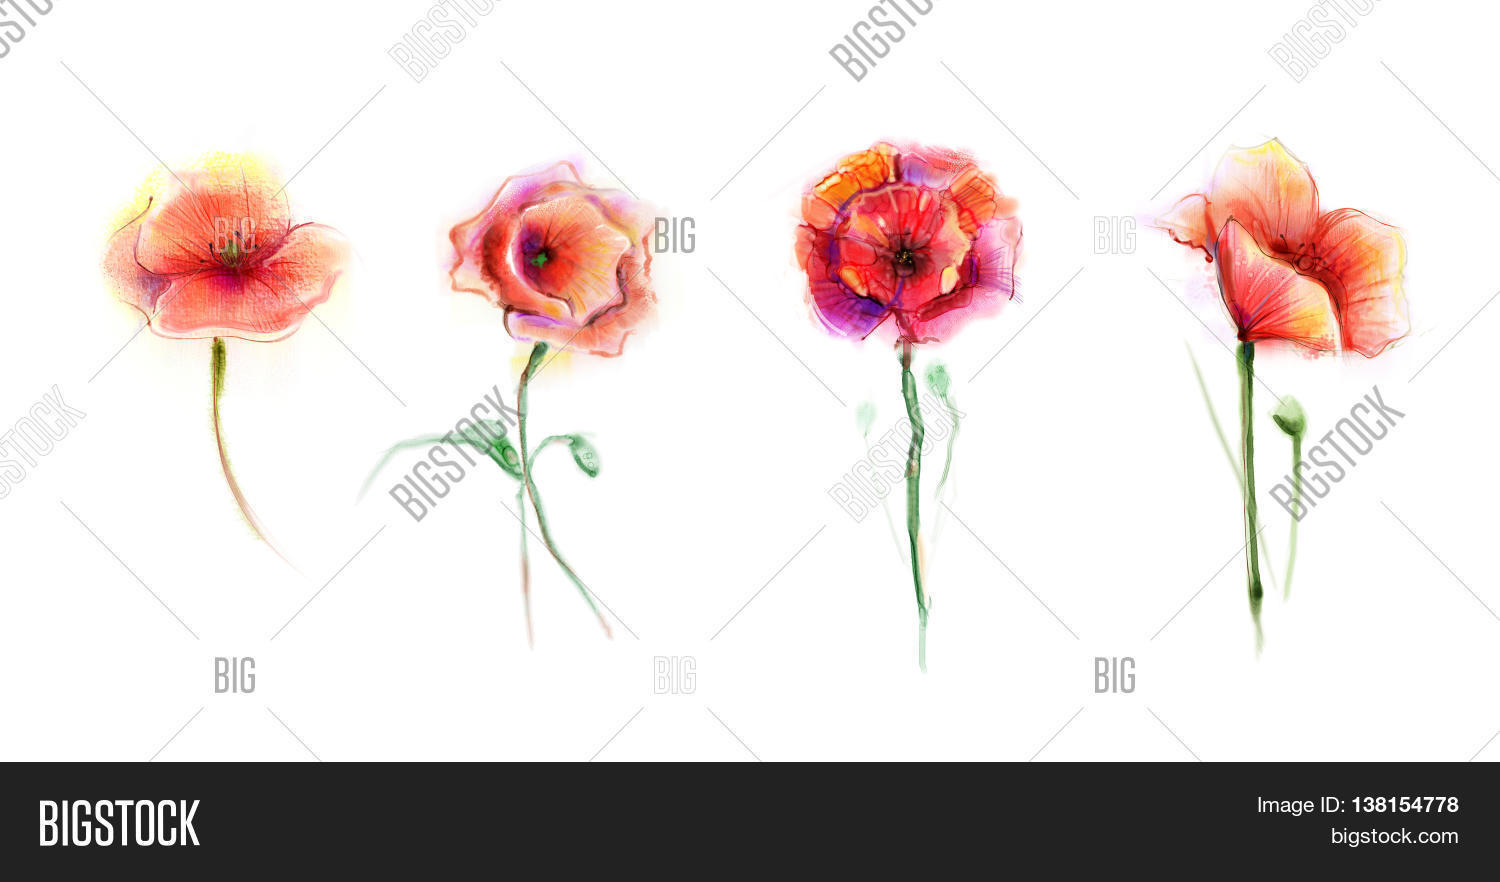 Watercolor painting image photo free trial bigstock watercolor painting poppy flower isolated flowers on white background set of pink and red mightylinksfo